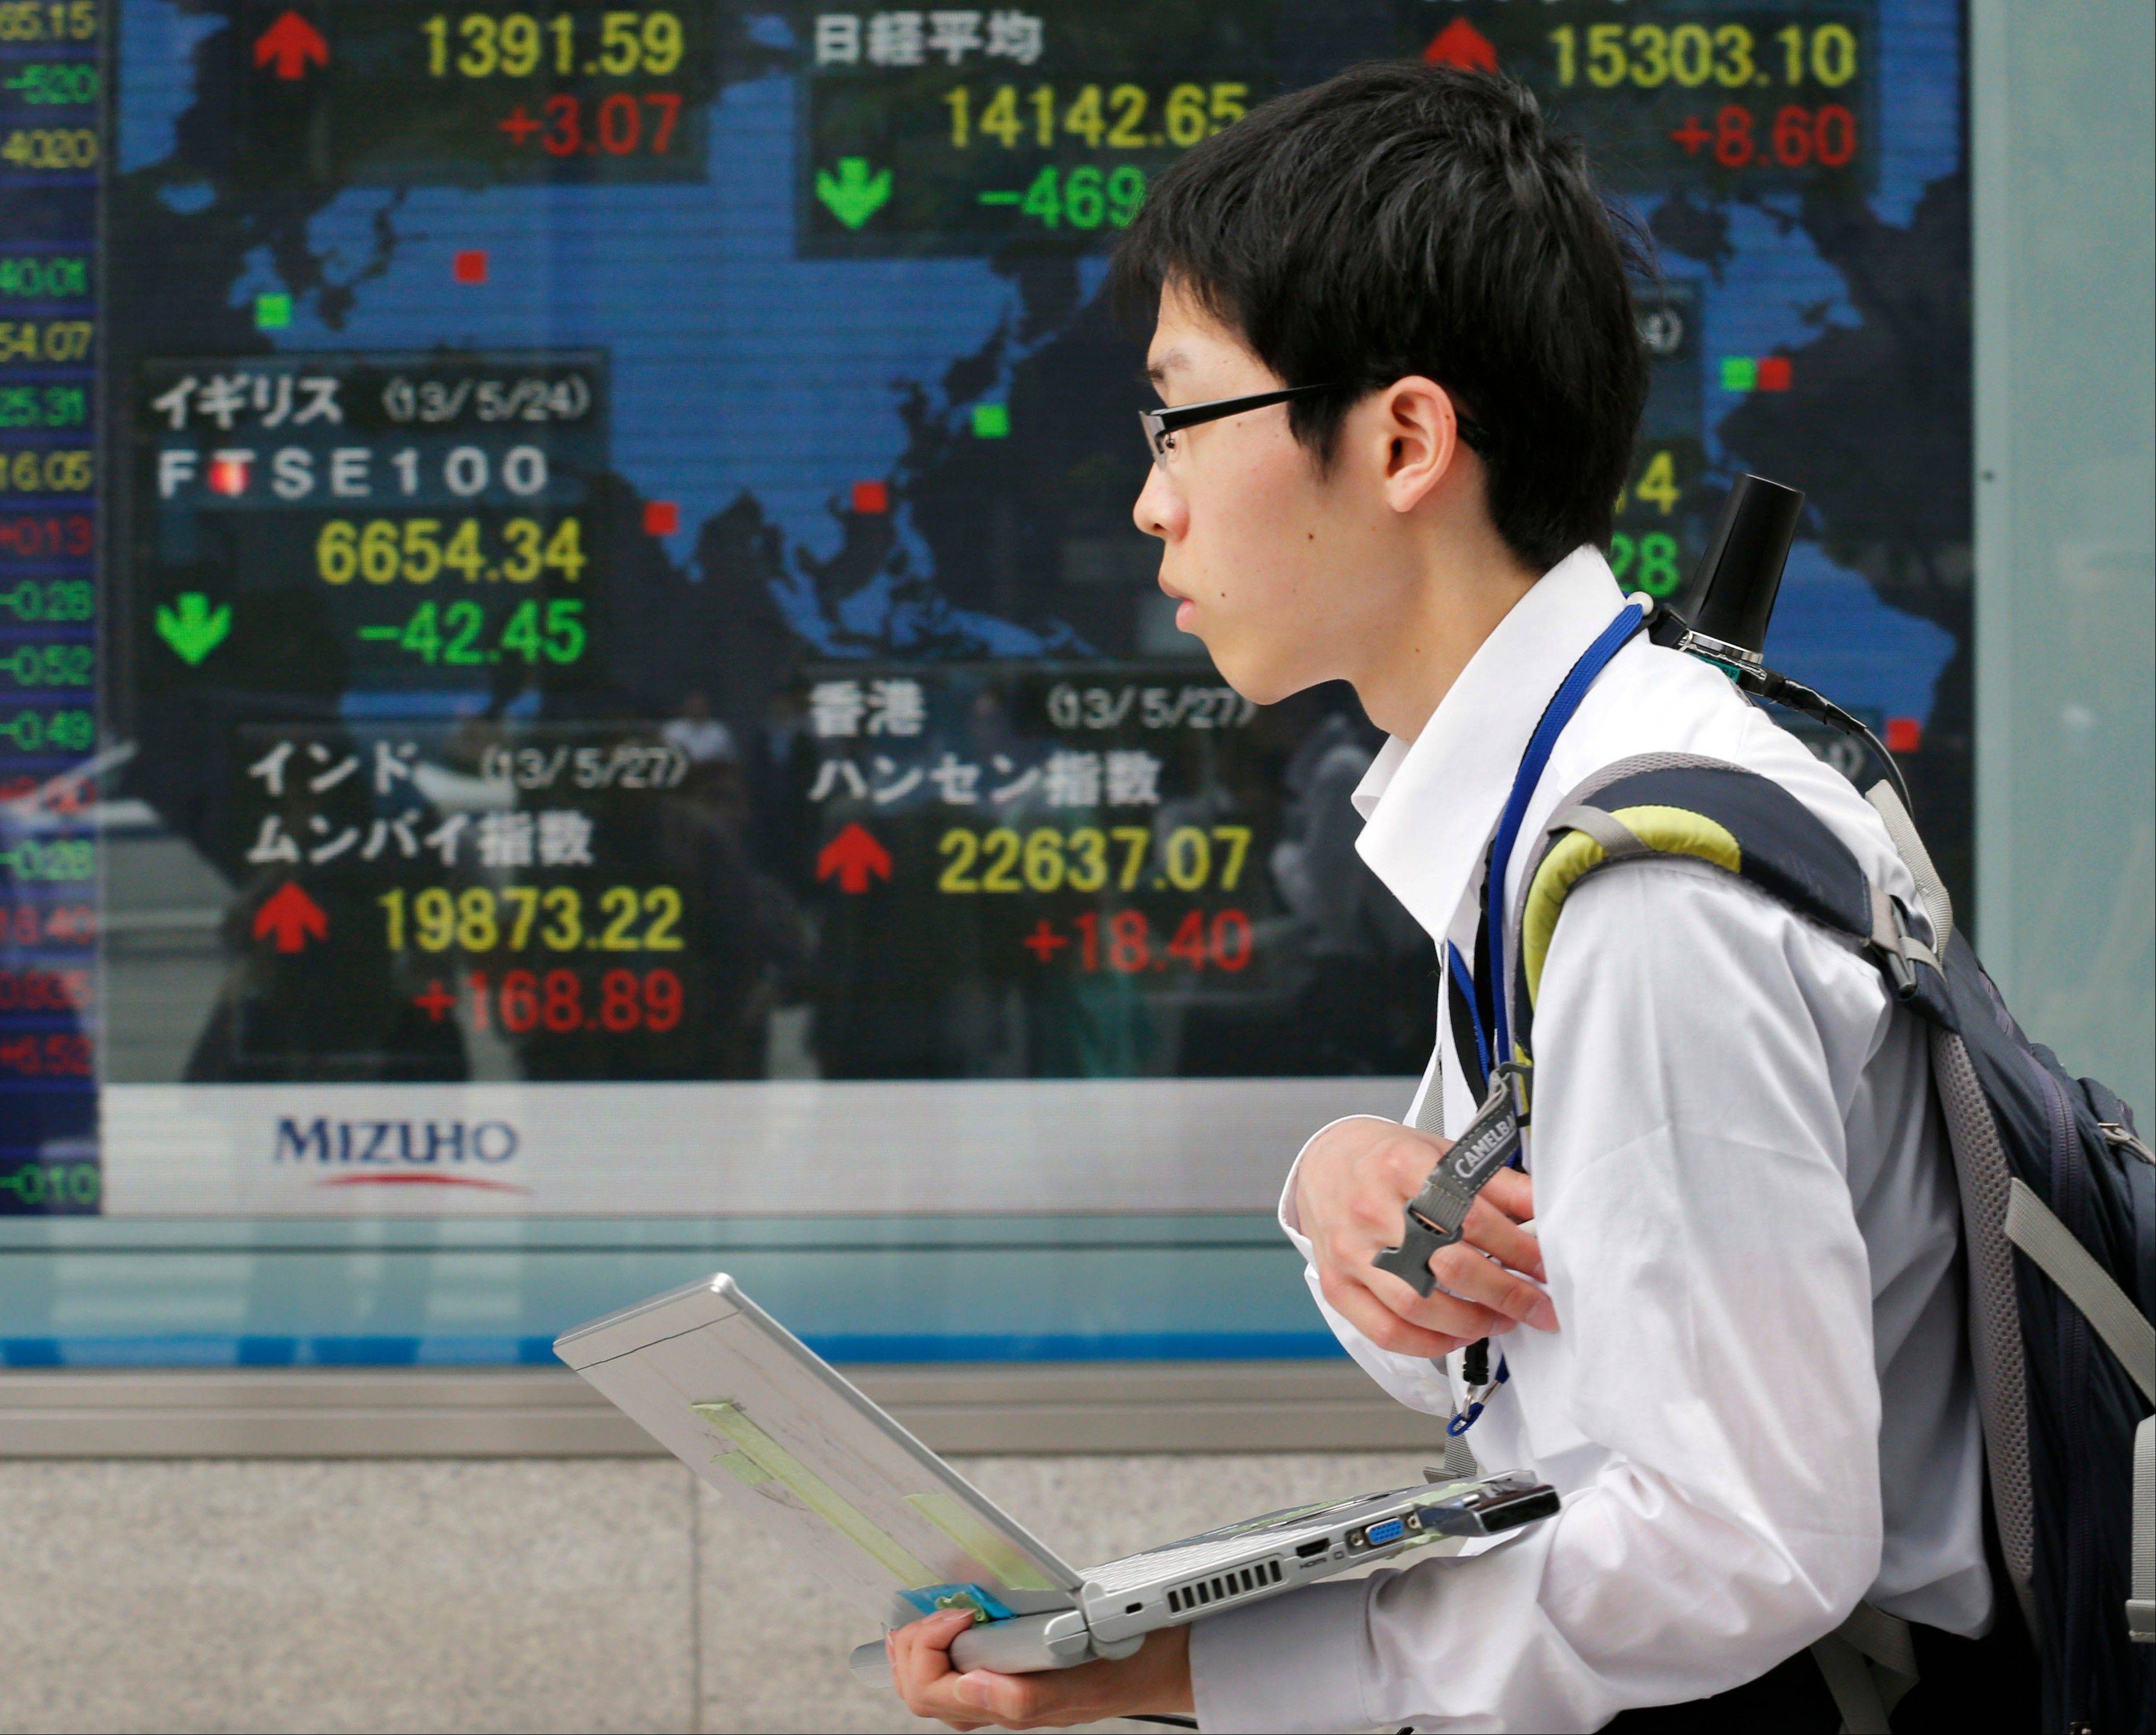 A youth walks by an electronic stock board of a securities firm in Tokyo Monday, May 27, 2013. The Nikkei 225 closed down 469.80 points, or 3.22 percent at 14,142.65 Monday after the yen reversed some of its recent fall against the U.S. dollar. Stocks elsewhere in Asia were mixed as investors tried to sort out conflicting indicators about the health of the global economy.